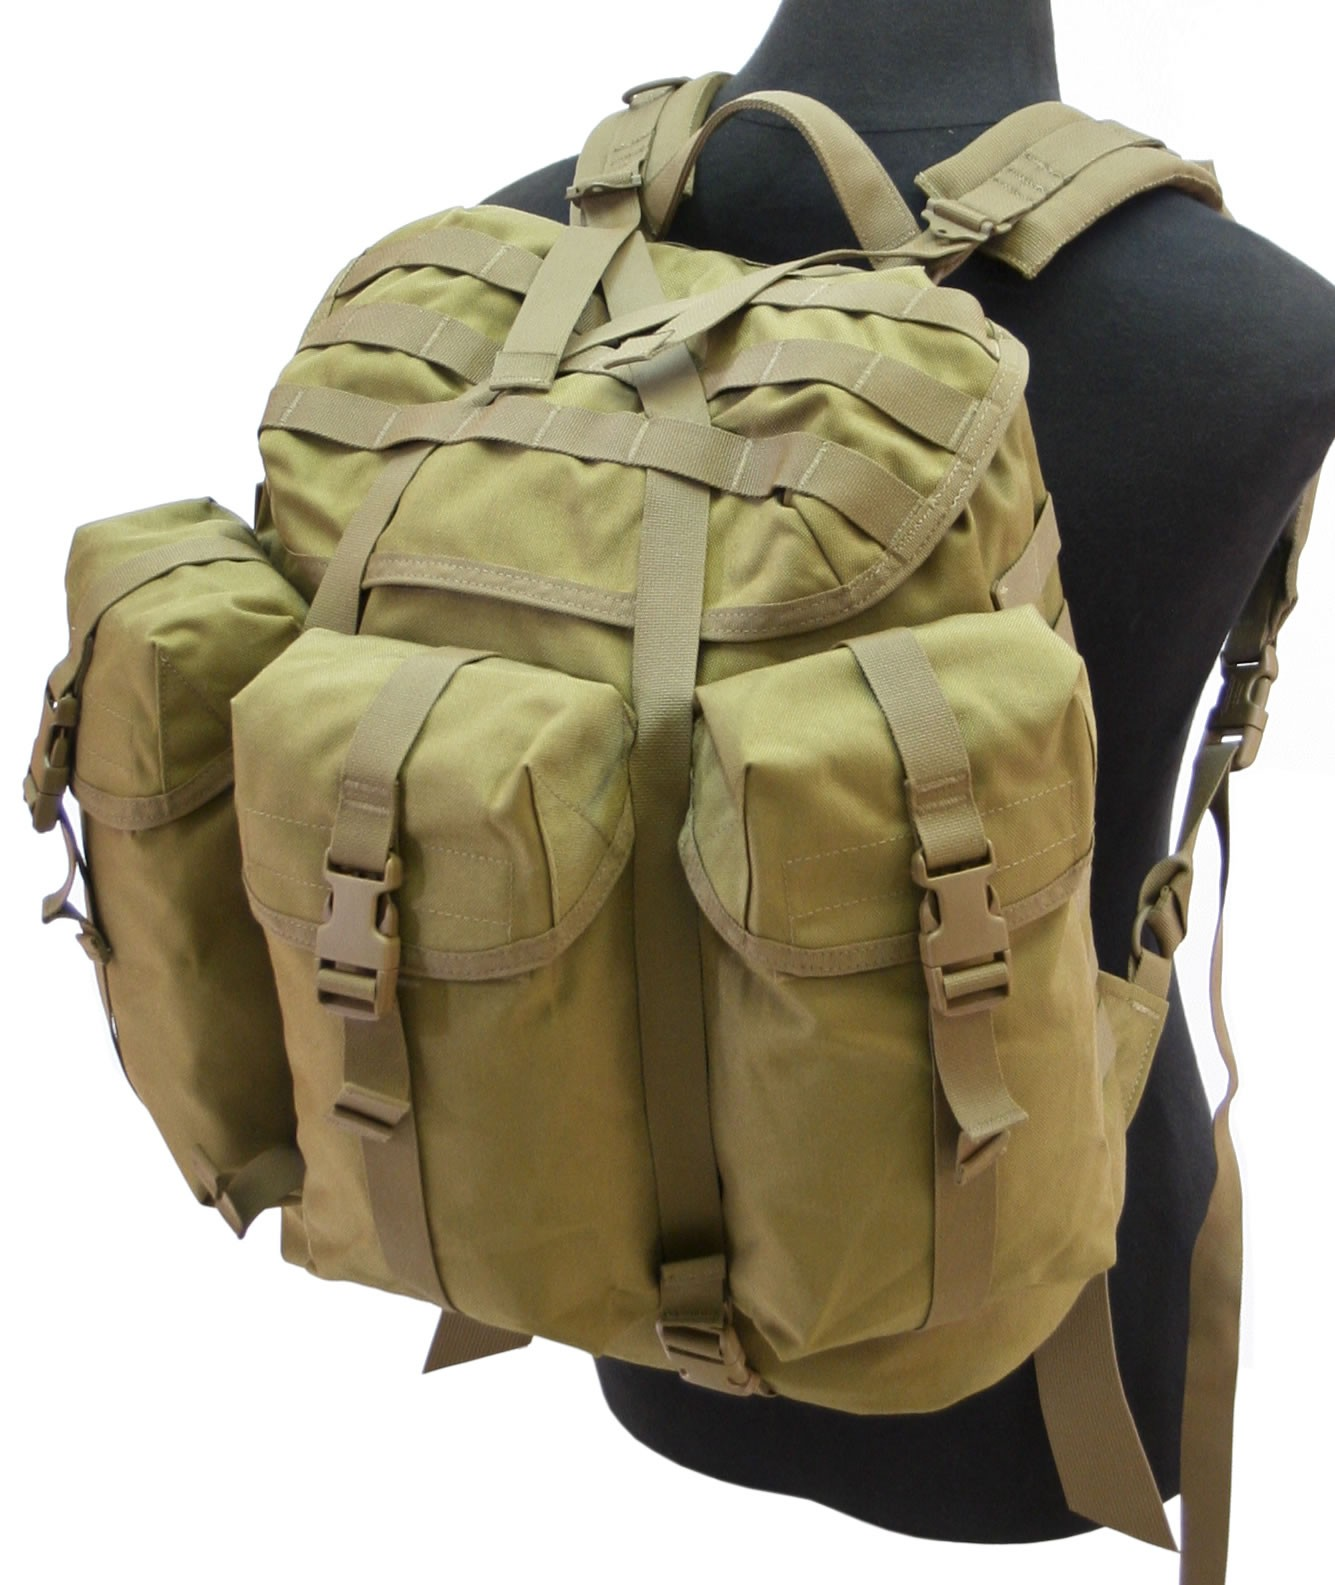 Backpack made in USA or the Far East  Military and Tactical Gear ... 45ab8f545b62a